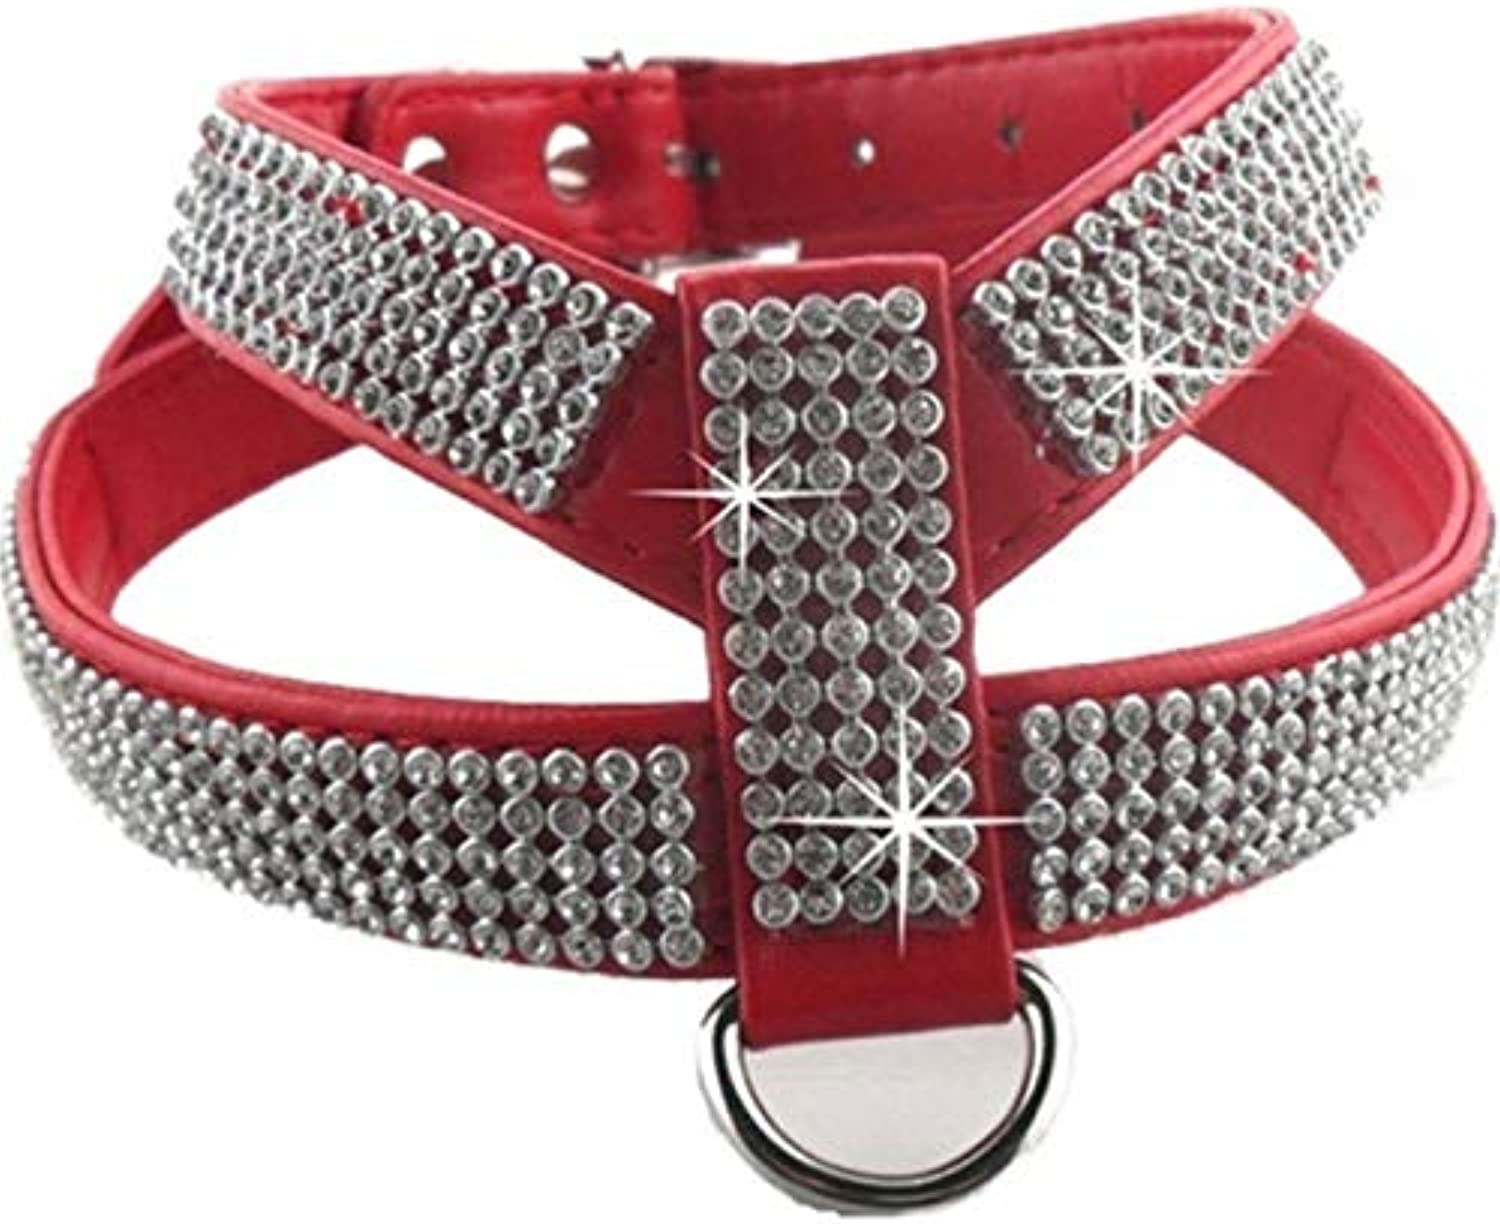 Dog Collar Harness Crystal Diamond Pet PU Leather for Pet Adjustable Bling Rhinestone Collar Pet Products,Red,L